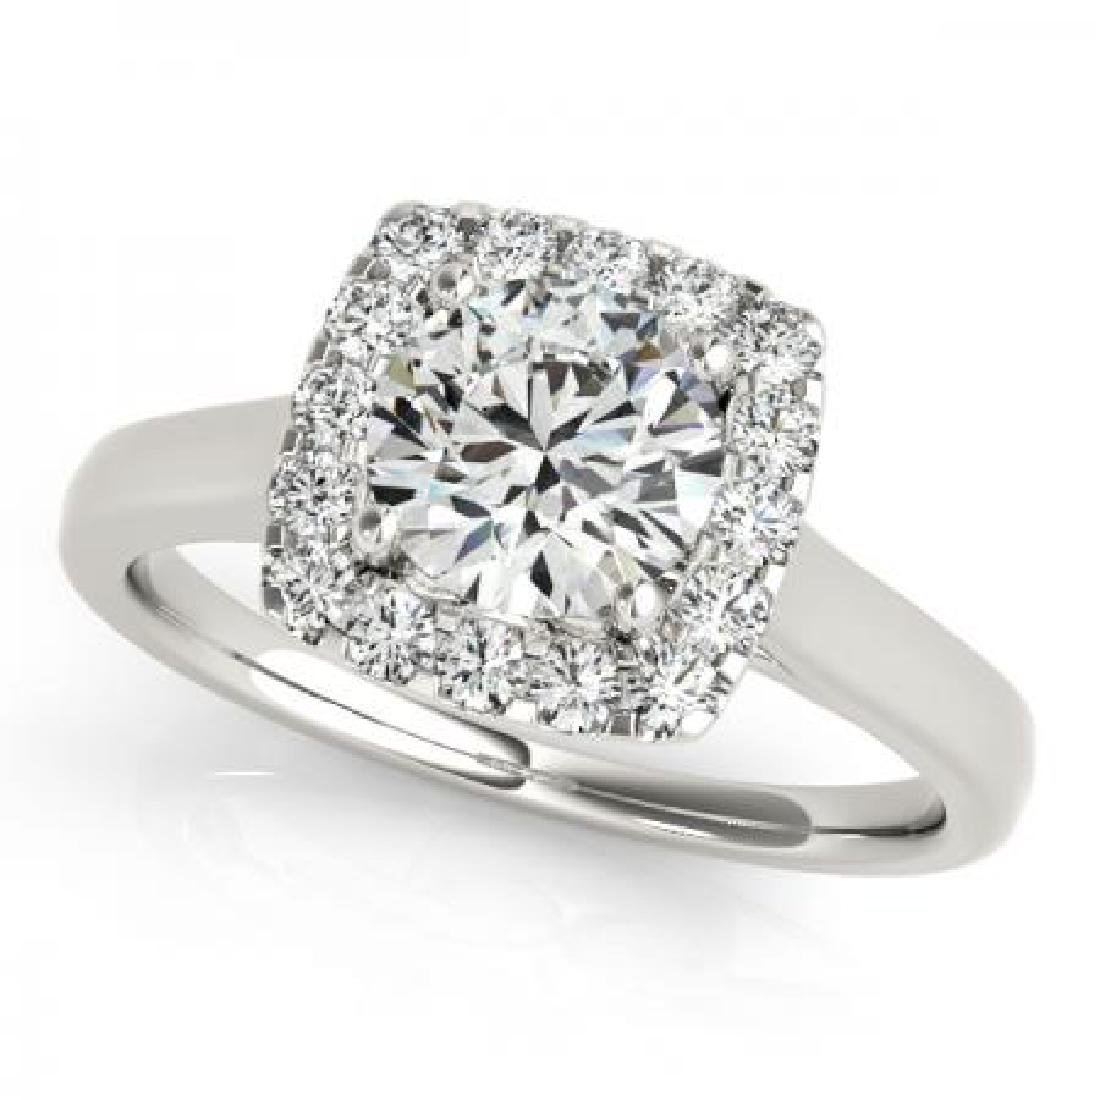 CERTIFIED PLATINUM 1.57 CT G-H/VS-SI1 DIAMOND HALO ENGA